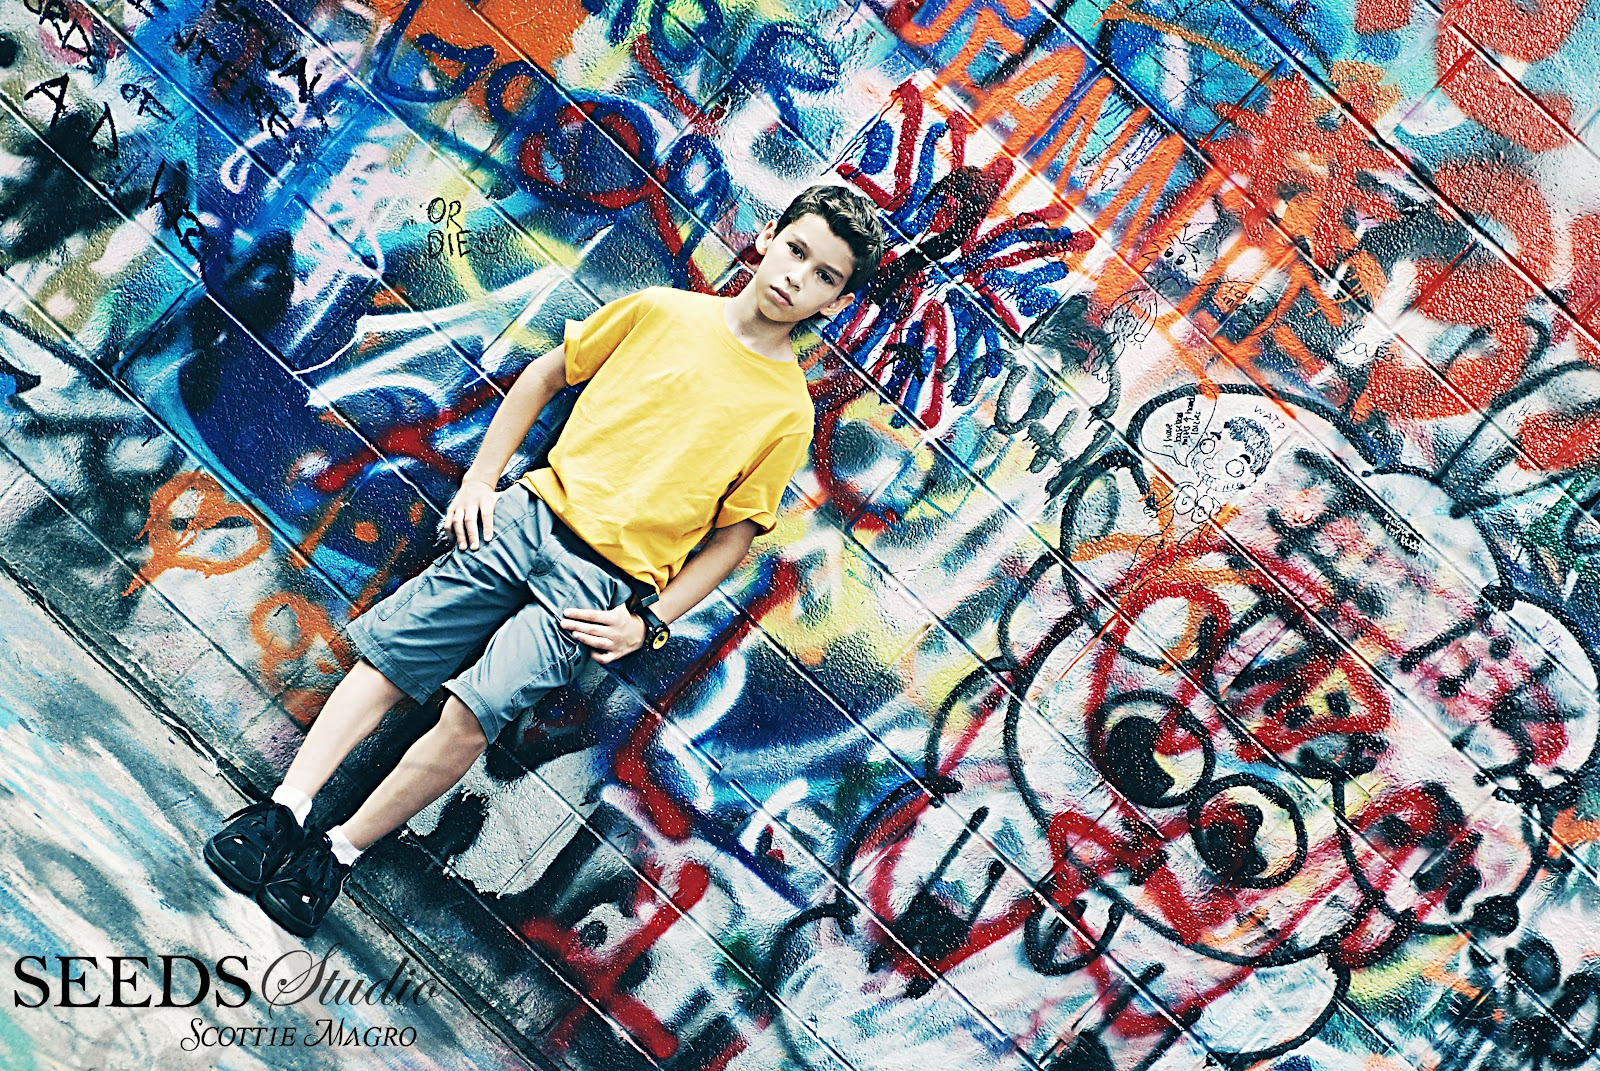 Graffiti wall ann arbor - Ann Arbor Michigan Has Great Places For Shoots One Of My Favorite Places To Shoot Is Graffiti Alley Great For Dud Shots